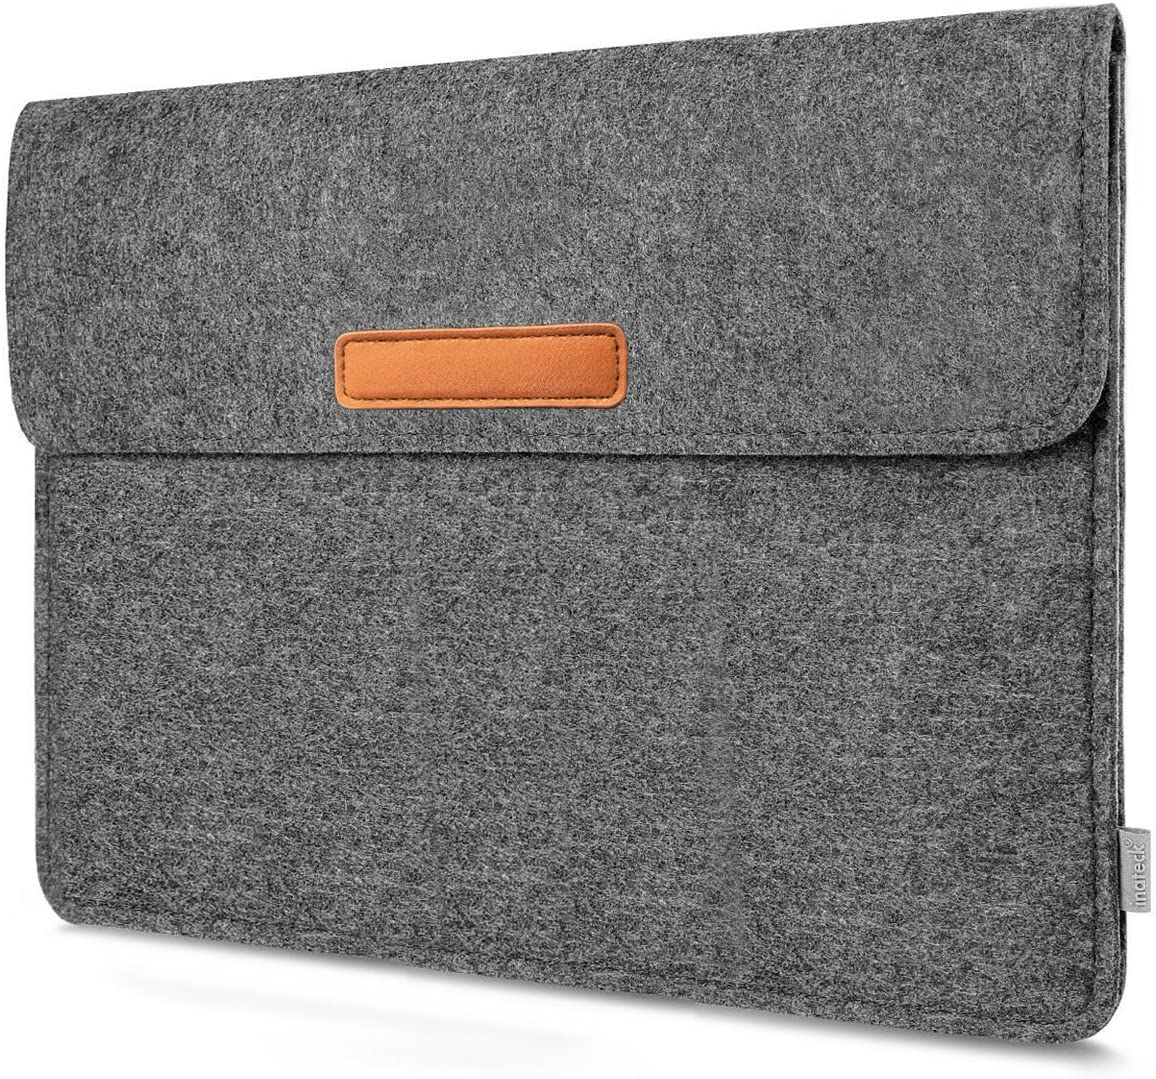 Inateck 10.5-11 Tablet Sleeve Carrying Case Compatible 10.2 iPad 2019/2018 iPad Pro 11/10.5 iPad Pro & iPad Air 2019/9.7 iPad Air/Galaxy Tab - ...